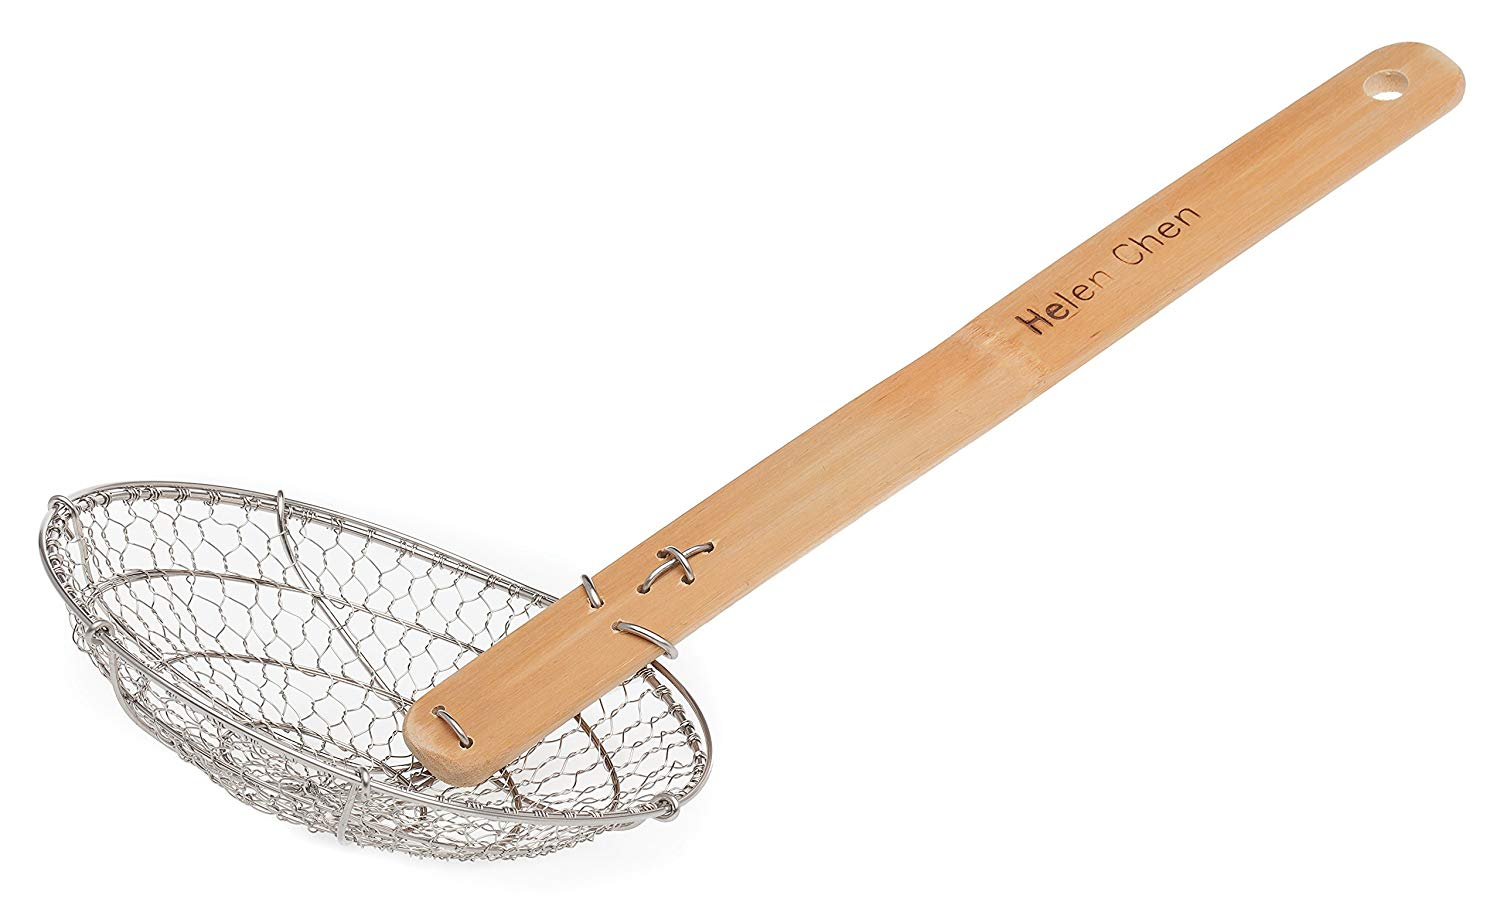 helen-chen-stainless-steel-spider-strainer-with-bamboo-handle